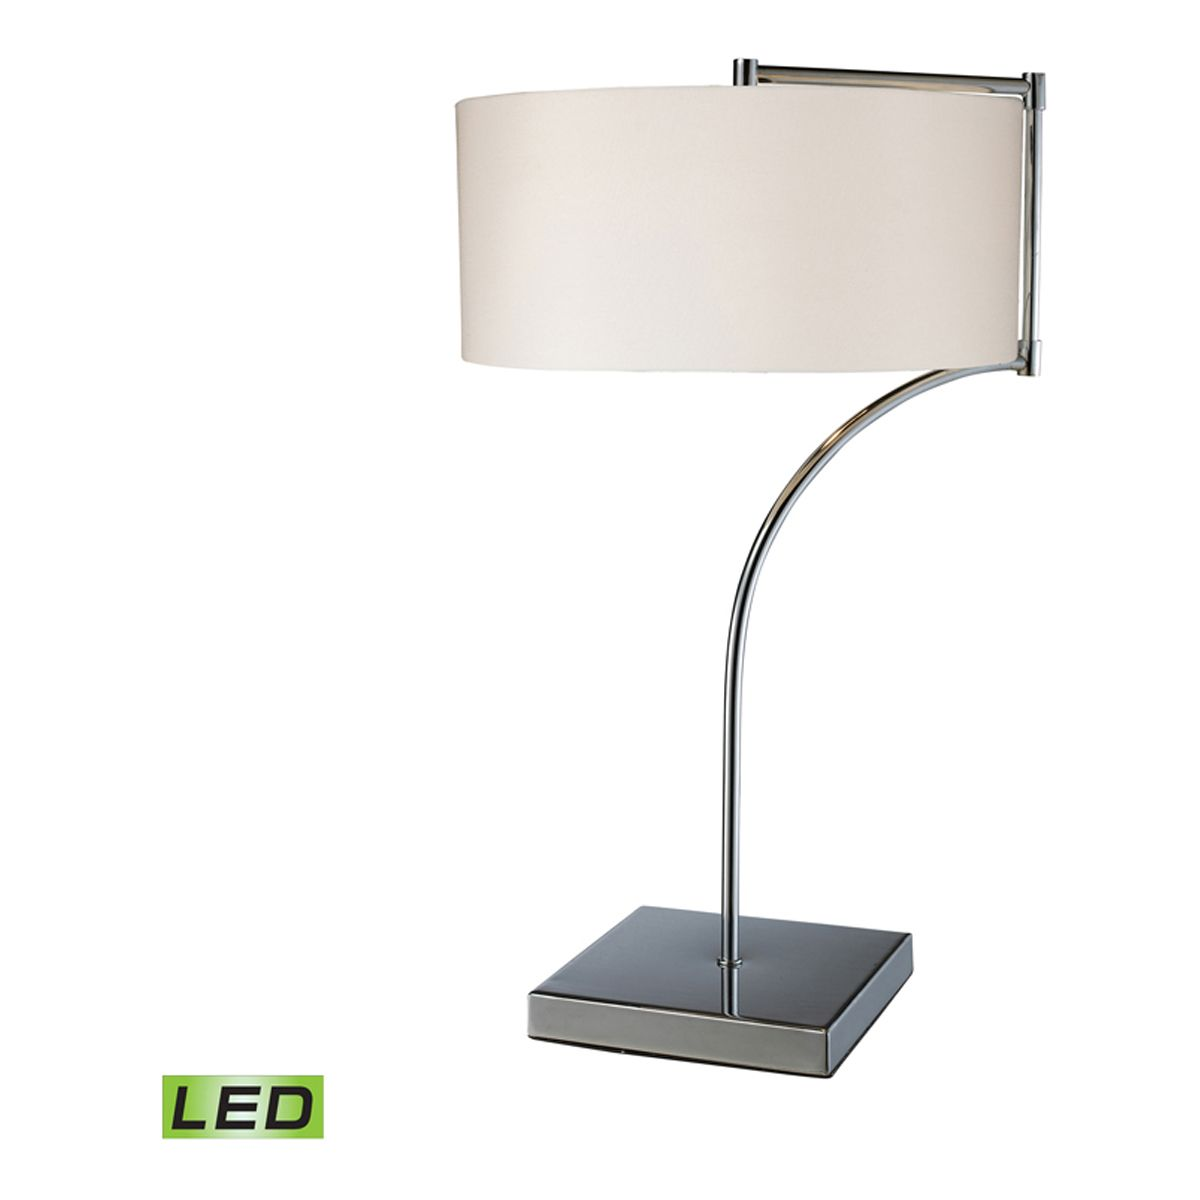 Dm D1833 Led Table Lamp Outdoor Table Lamps Lamp